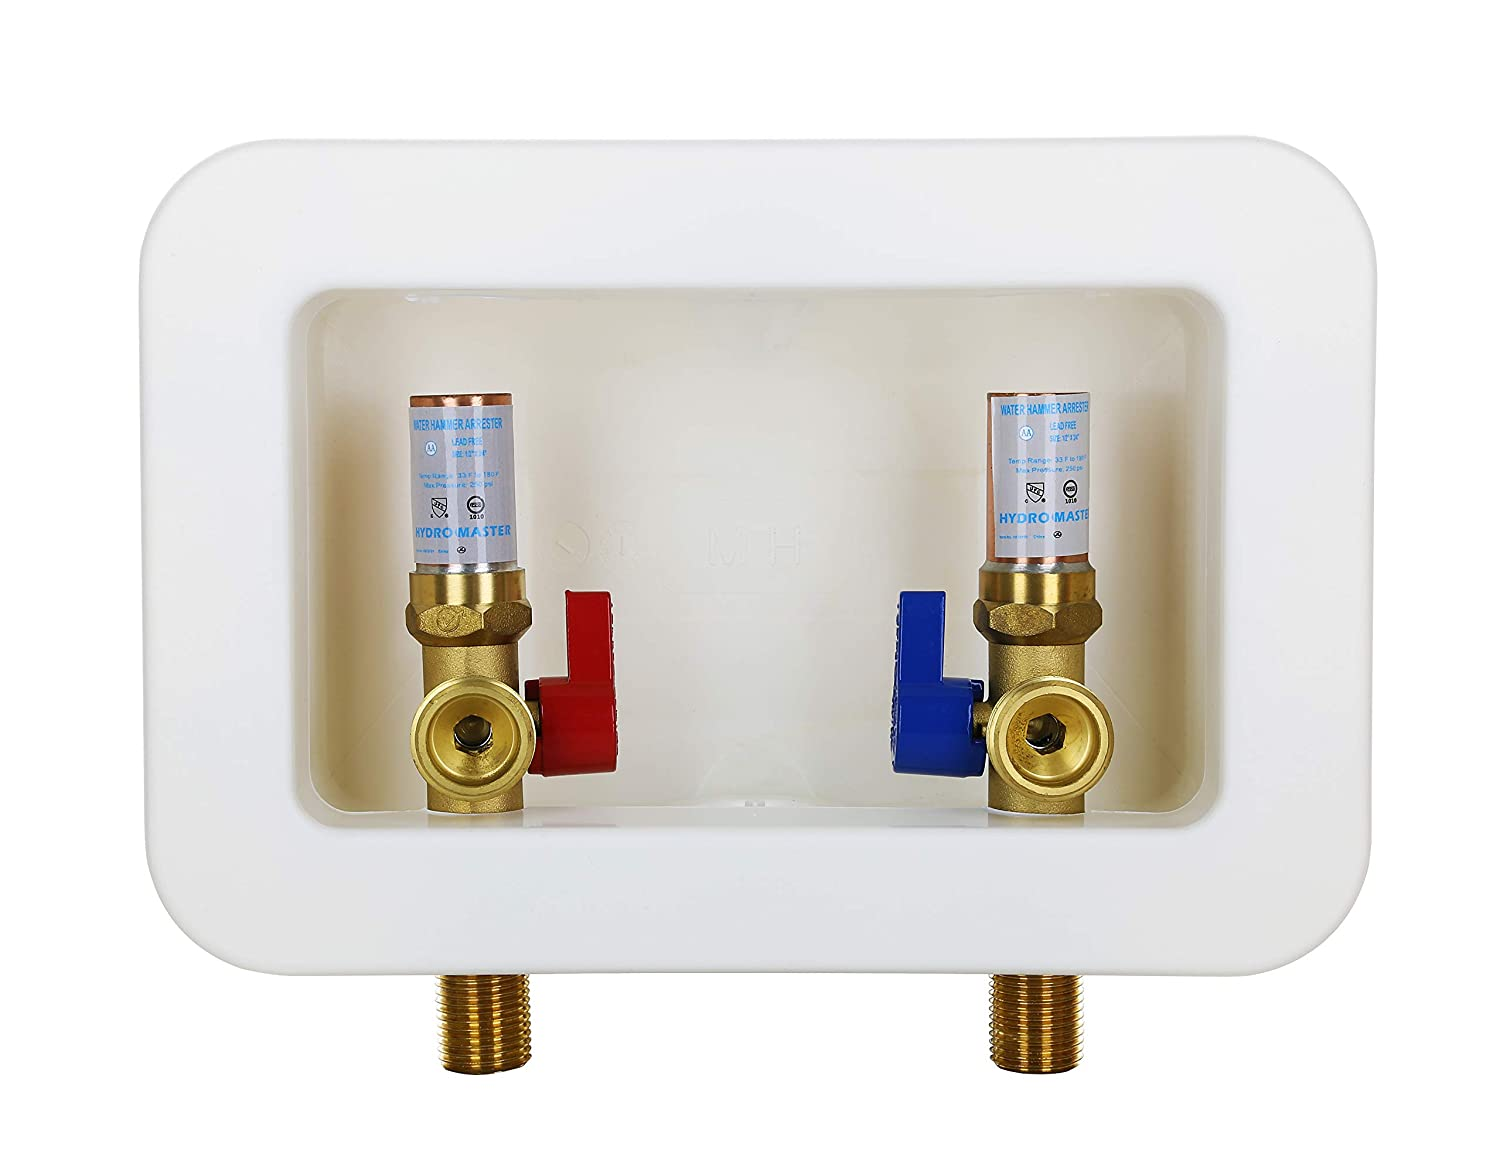 Hydro Master Washing Machine Outlet Box, Washing Stop Valves with Water Hammer Arrestor